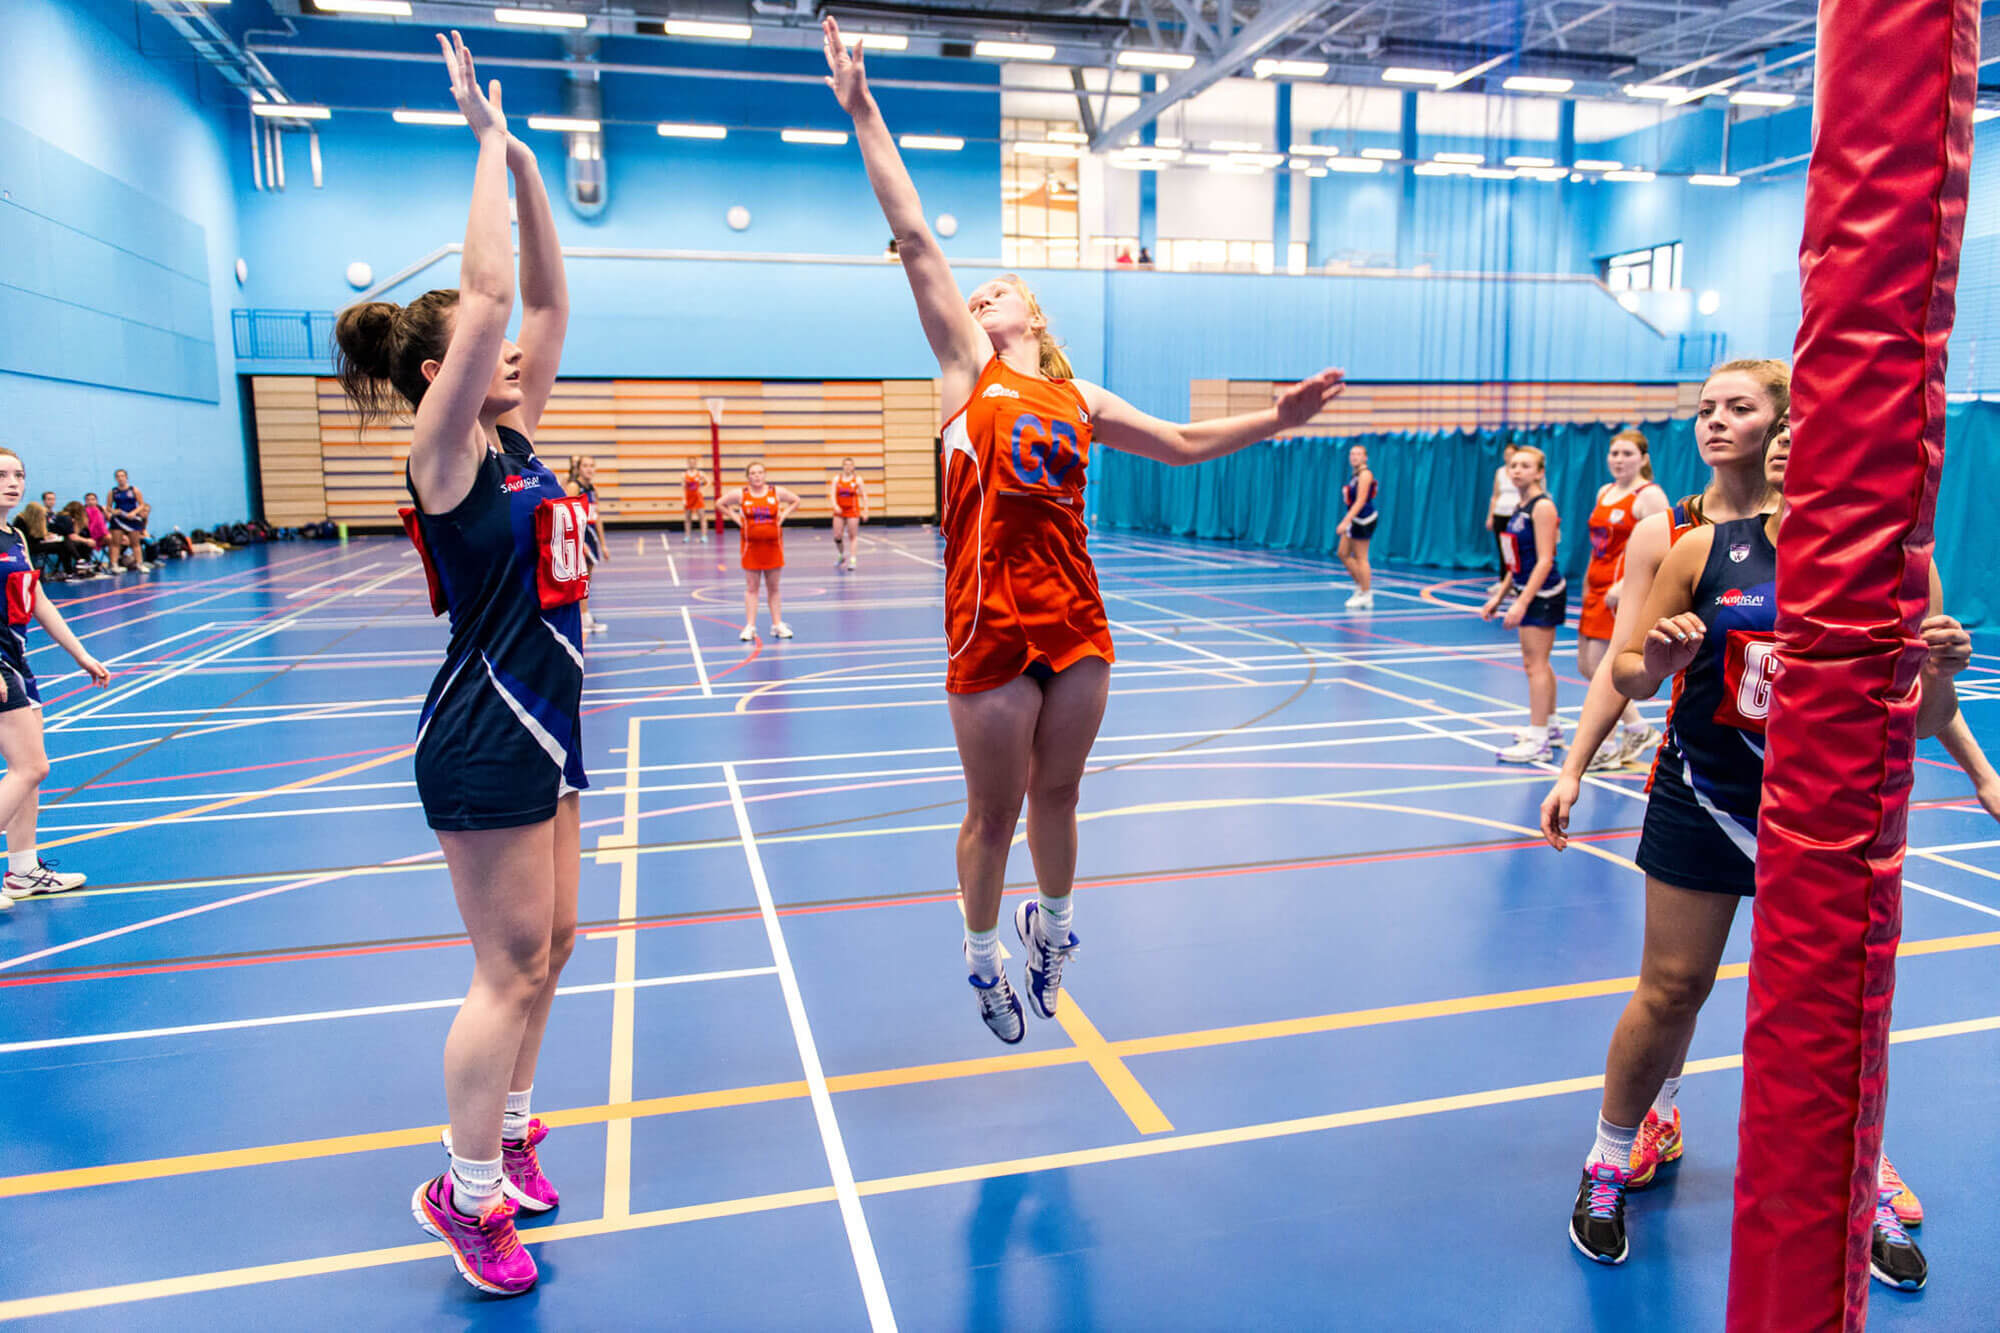 Womens Netball 2nd Team, playing in the Sports Centre at the University of Derby.